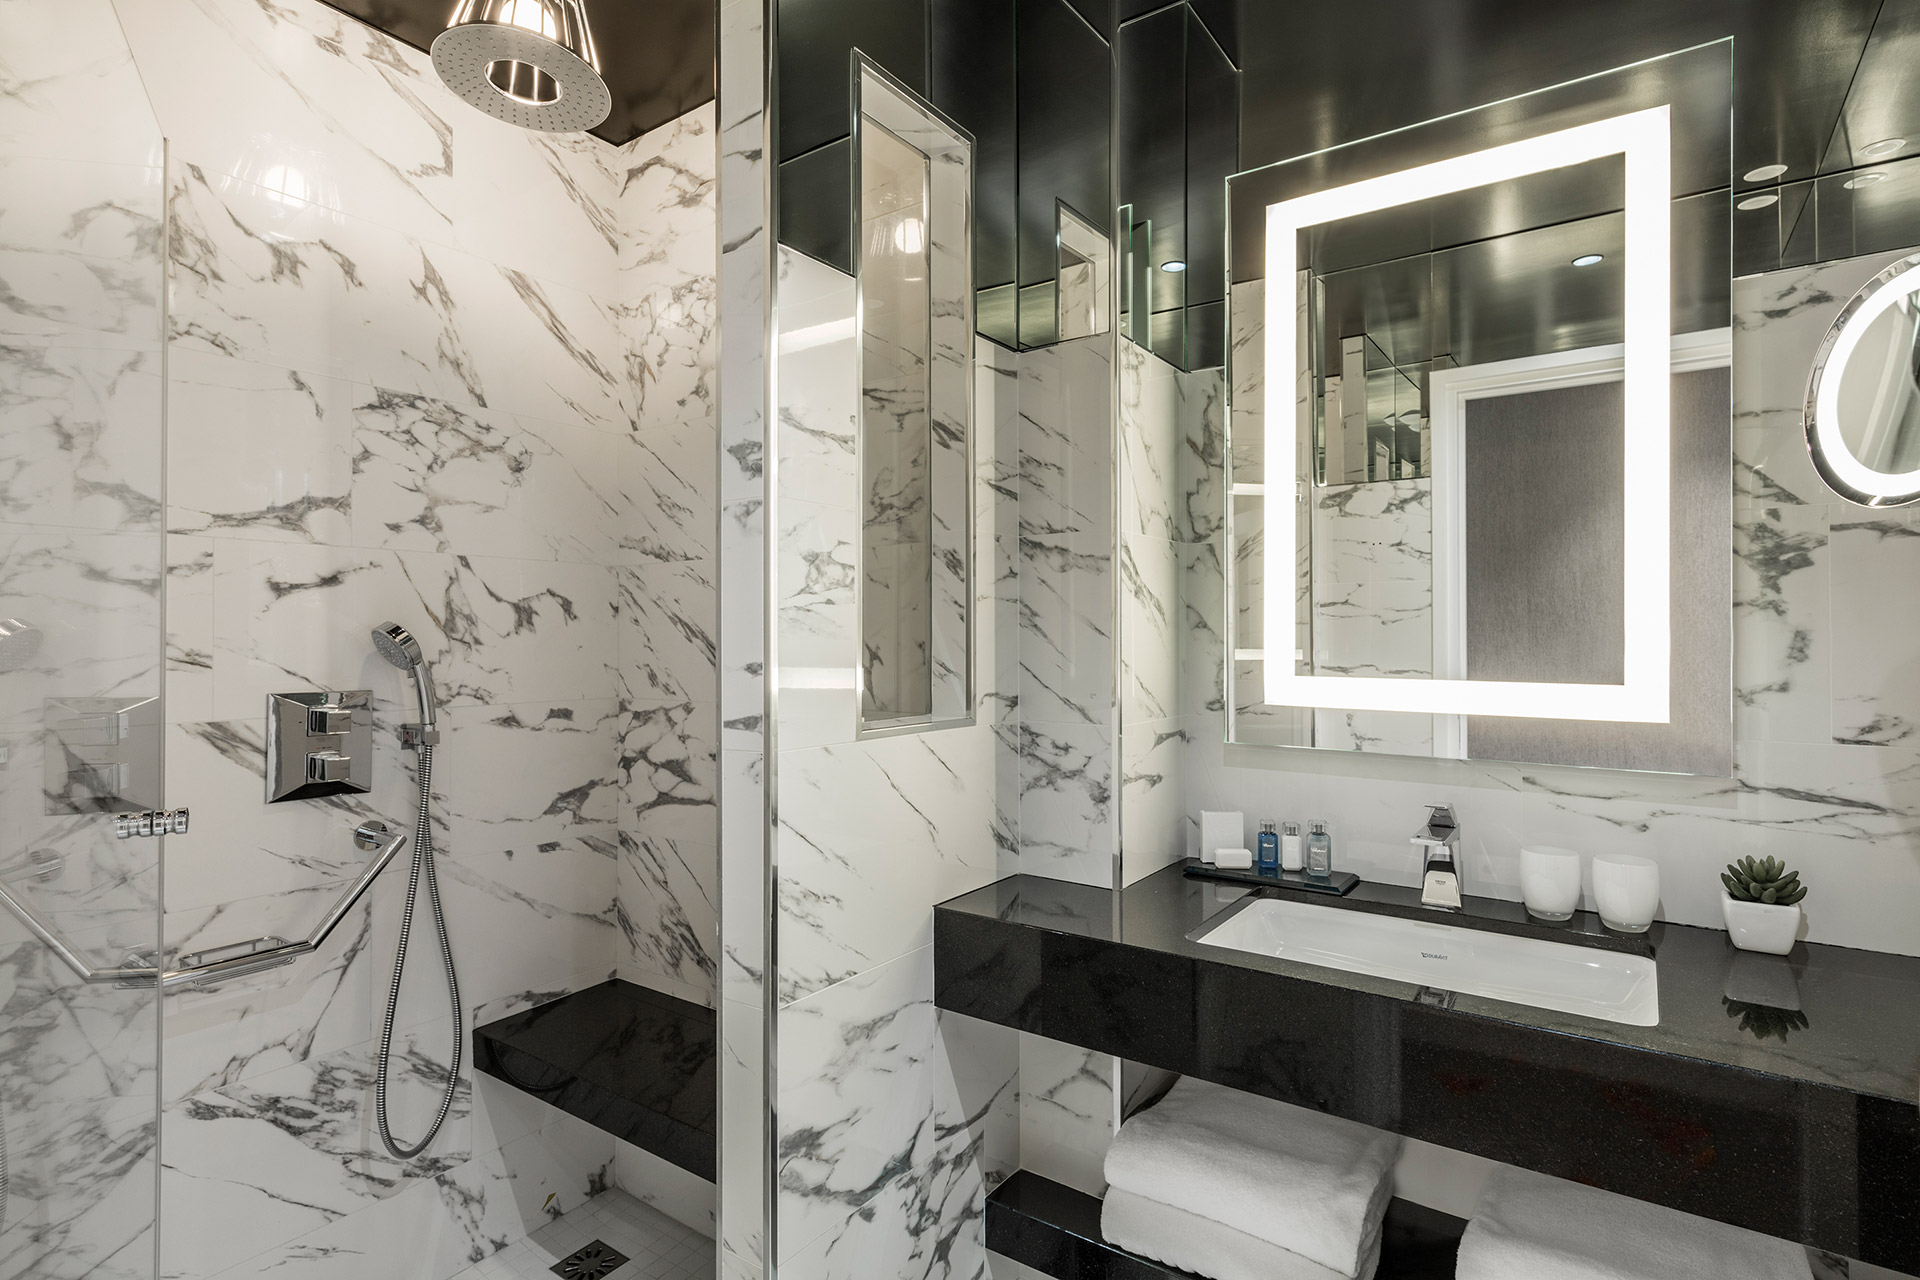 Maison Albar Hotels Le Diamond salle de bain Junior Suite